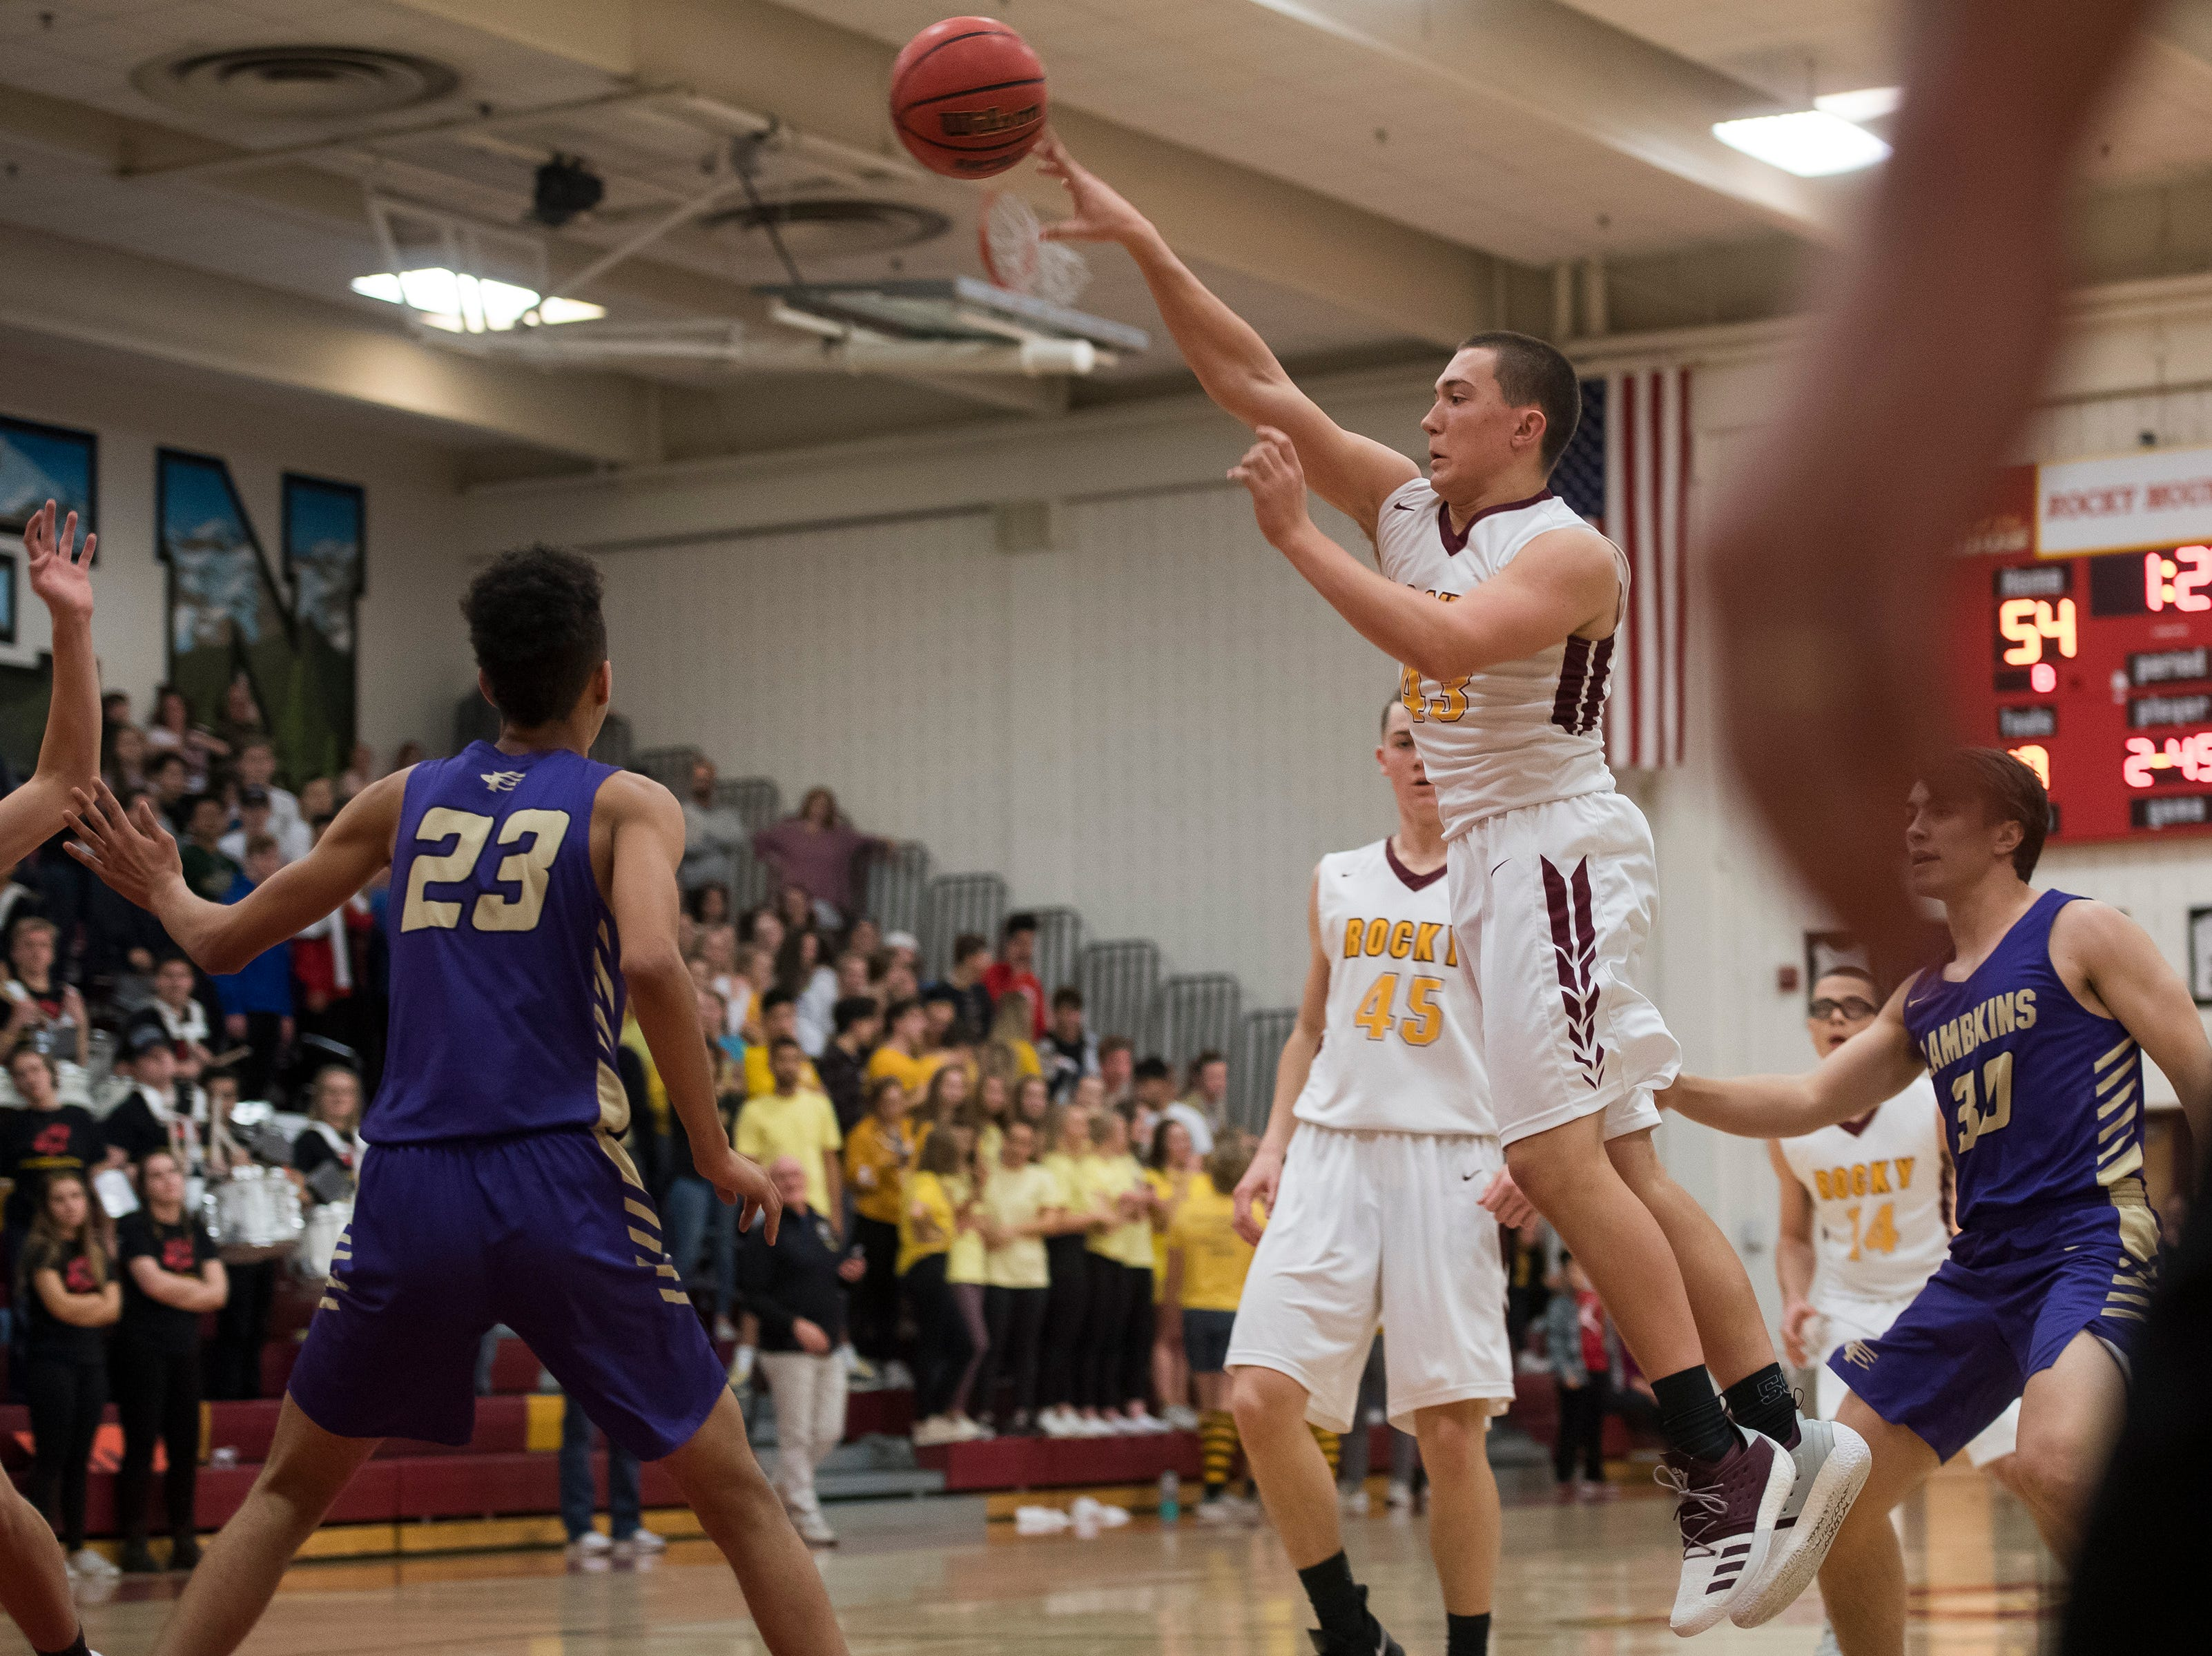 Rocky Mountain High School junior Pete Krohn (43) passes during a game against Fort Collins High School on Friday, Jan. 18, 2019, at Rocky Mountain High School in Fort Collins, Colo.